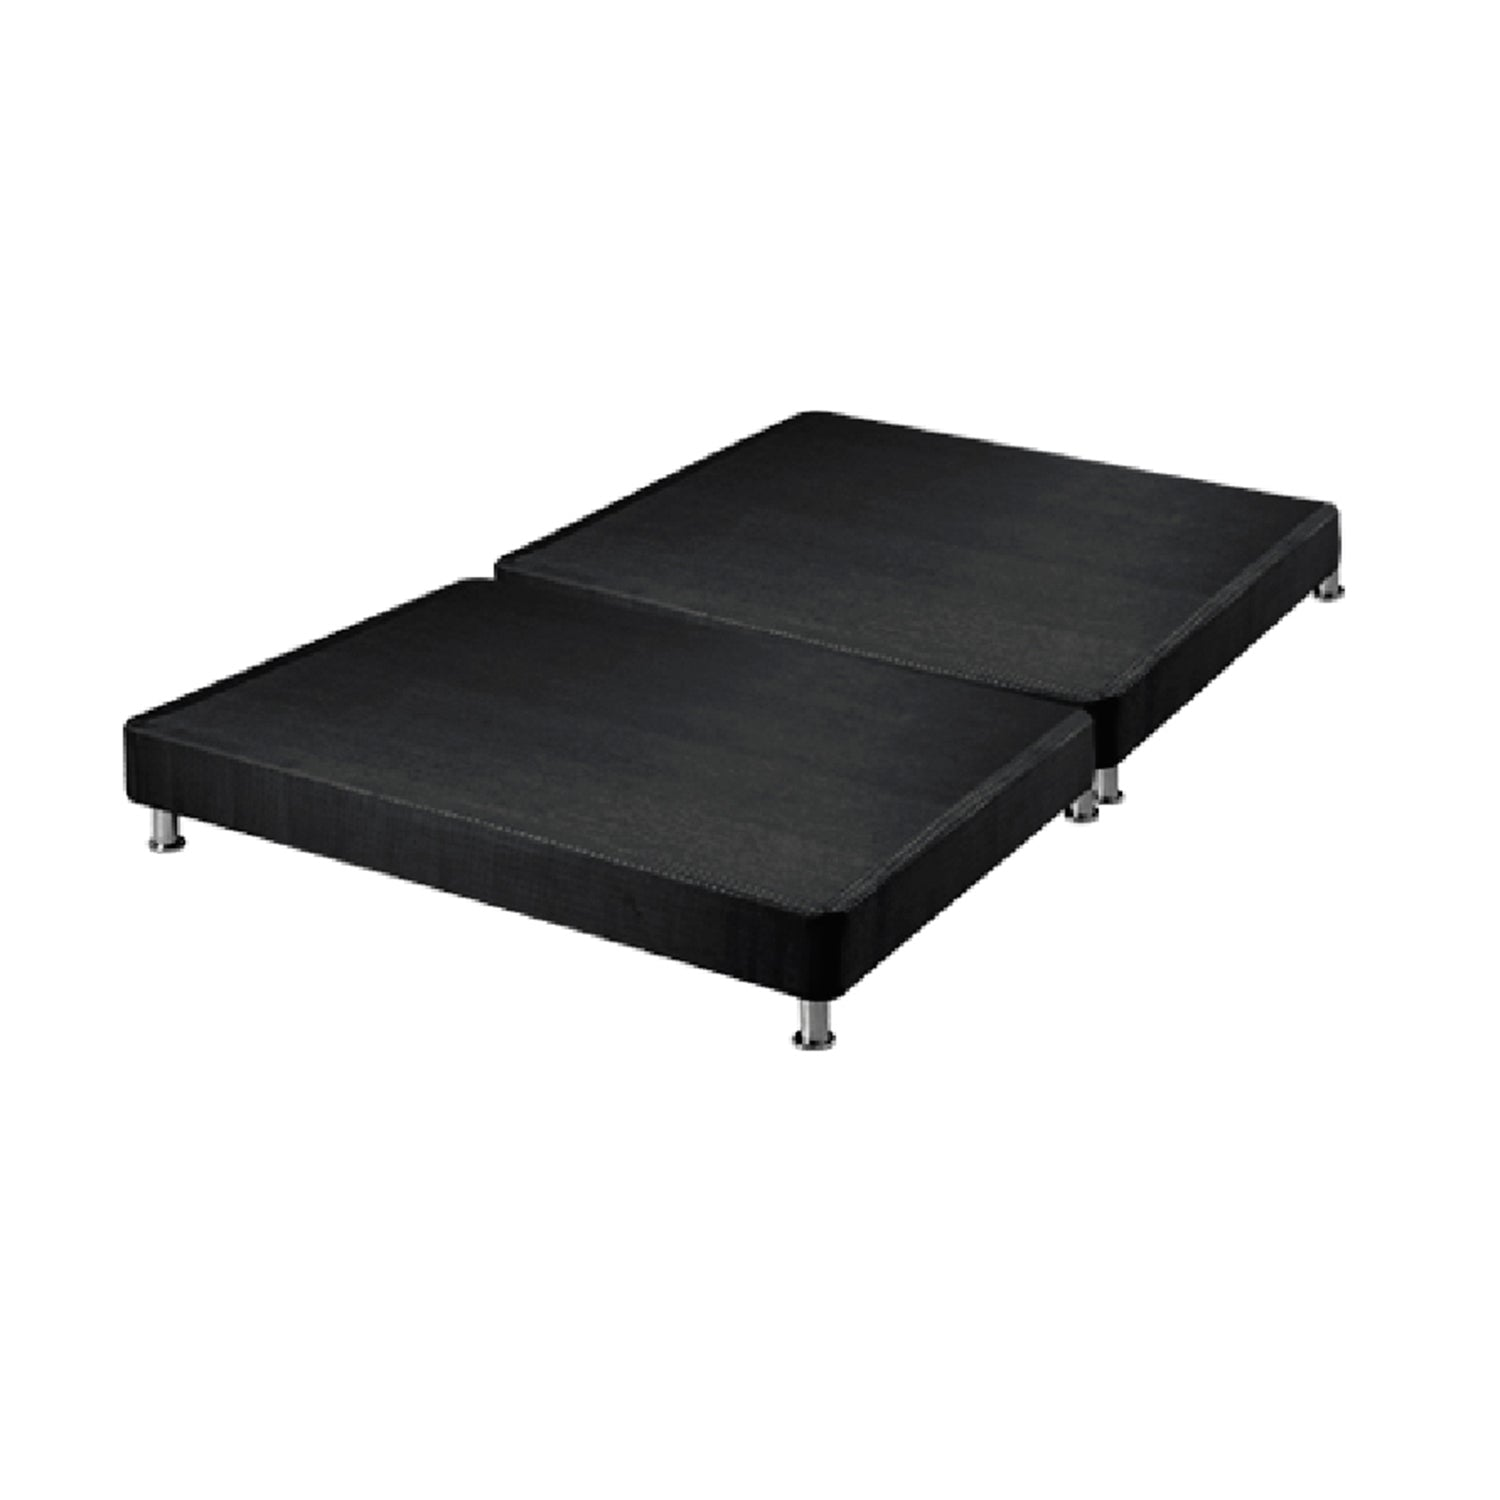 Base Cama Par King New Zabra Basic (Alto 14 cm)